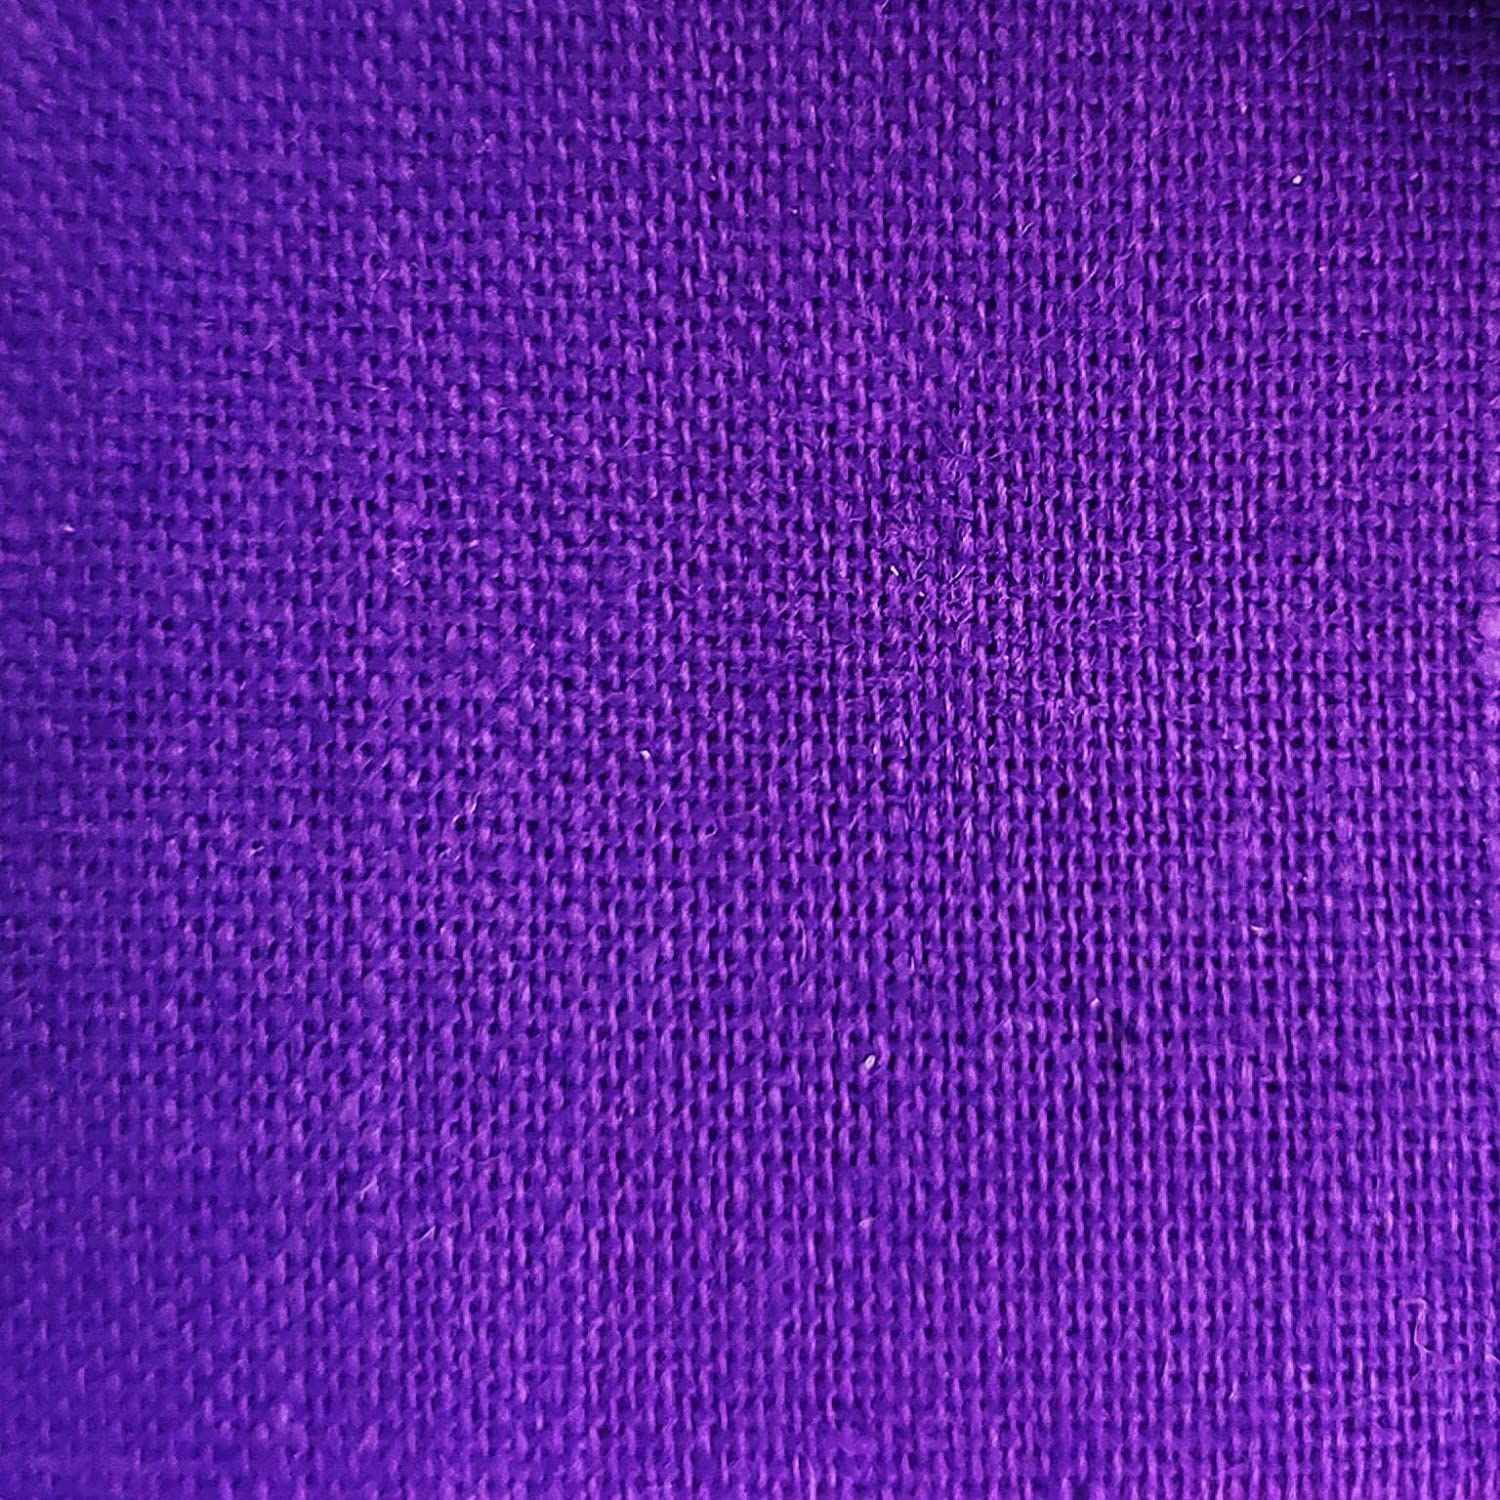 60 Wide by 1 Yard//Easy to Sew//Great for Lining//Mask Making//Apparel//Quilting Projects and Hobbies Solid Black Zen Creative Designs Cotton Fabric 1 Yard